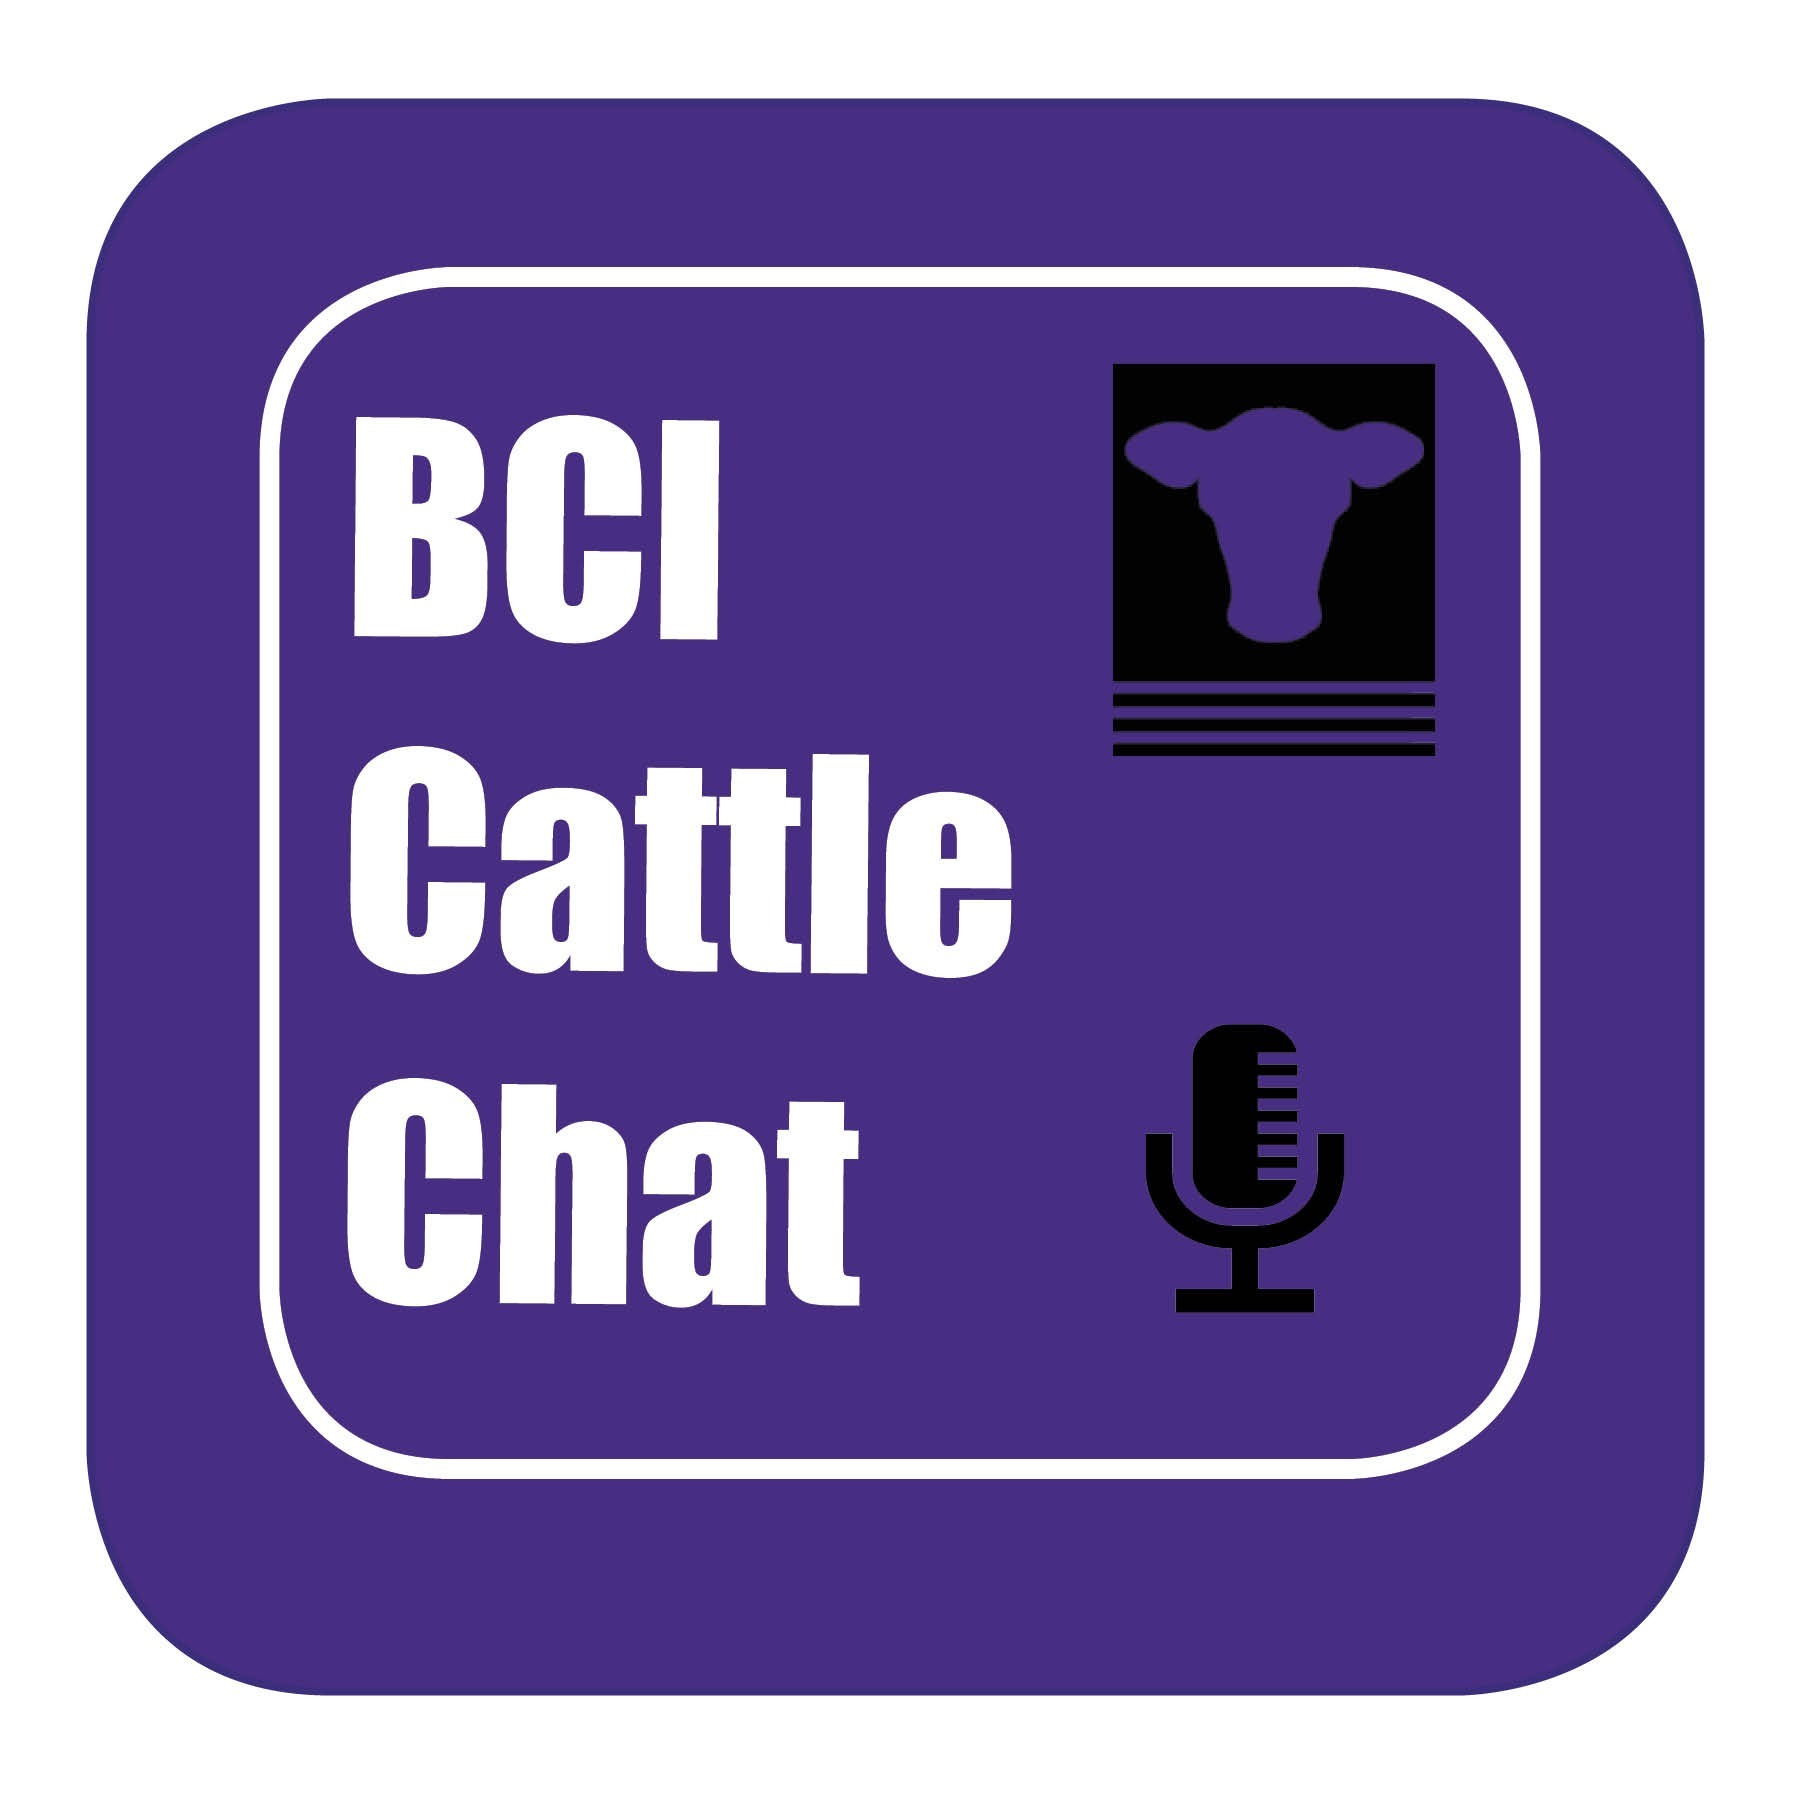 BCI Cattle Chat - Episode 51